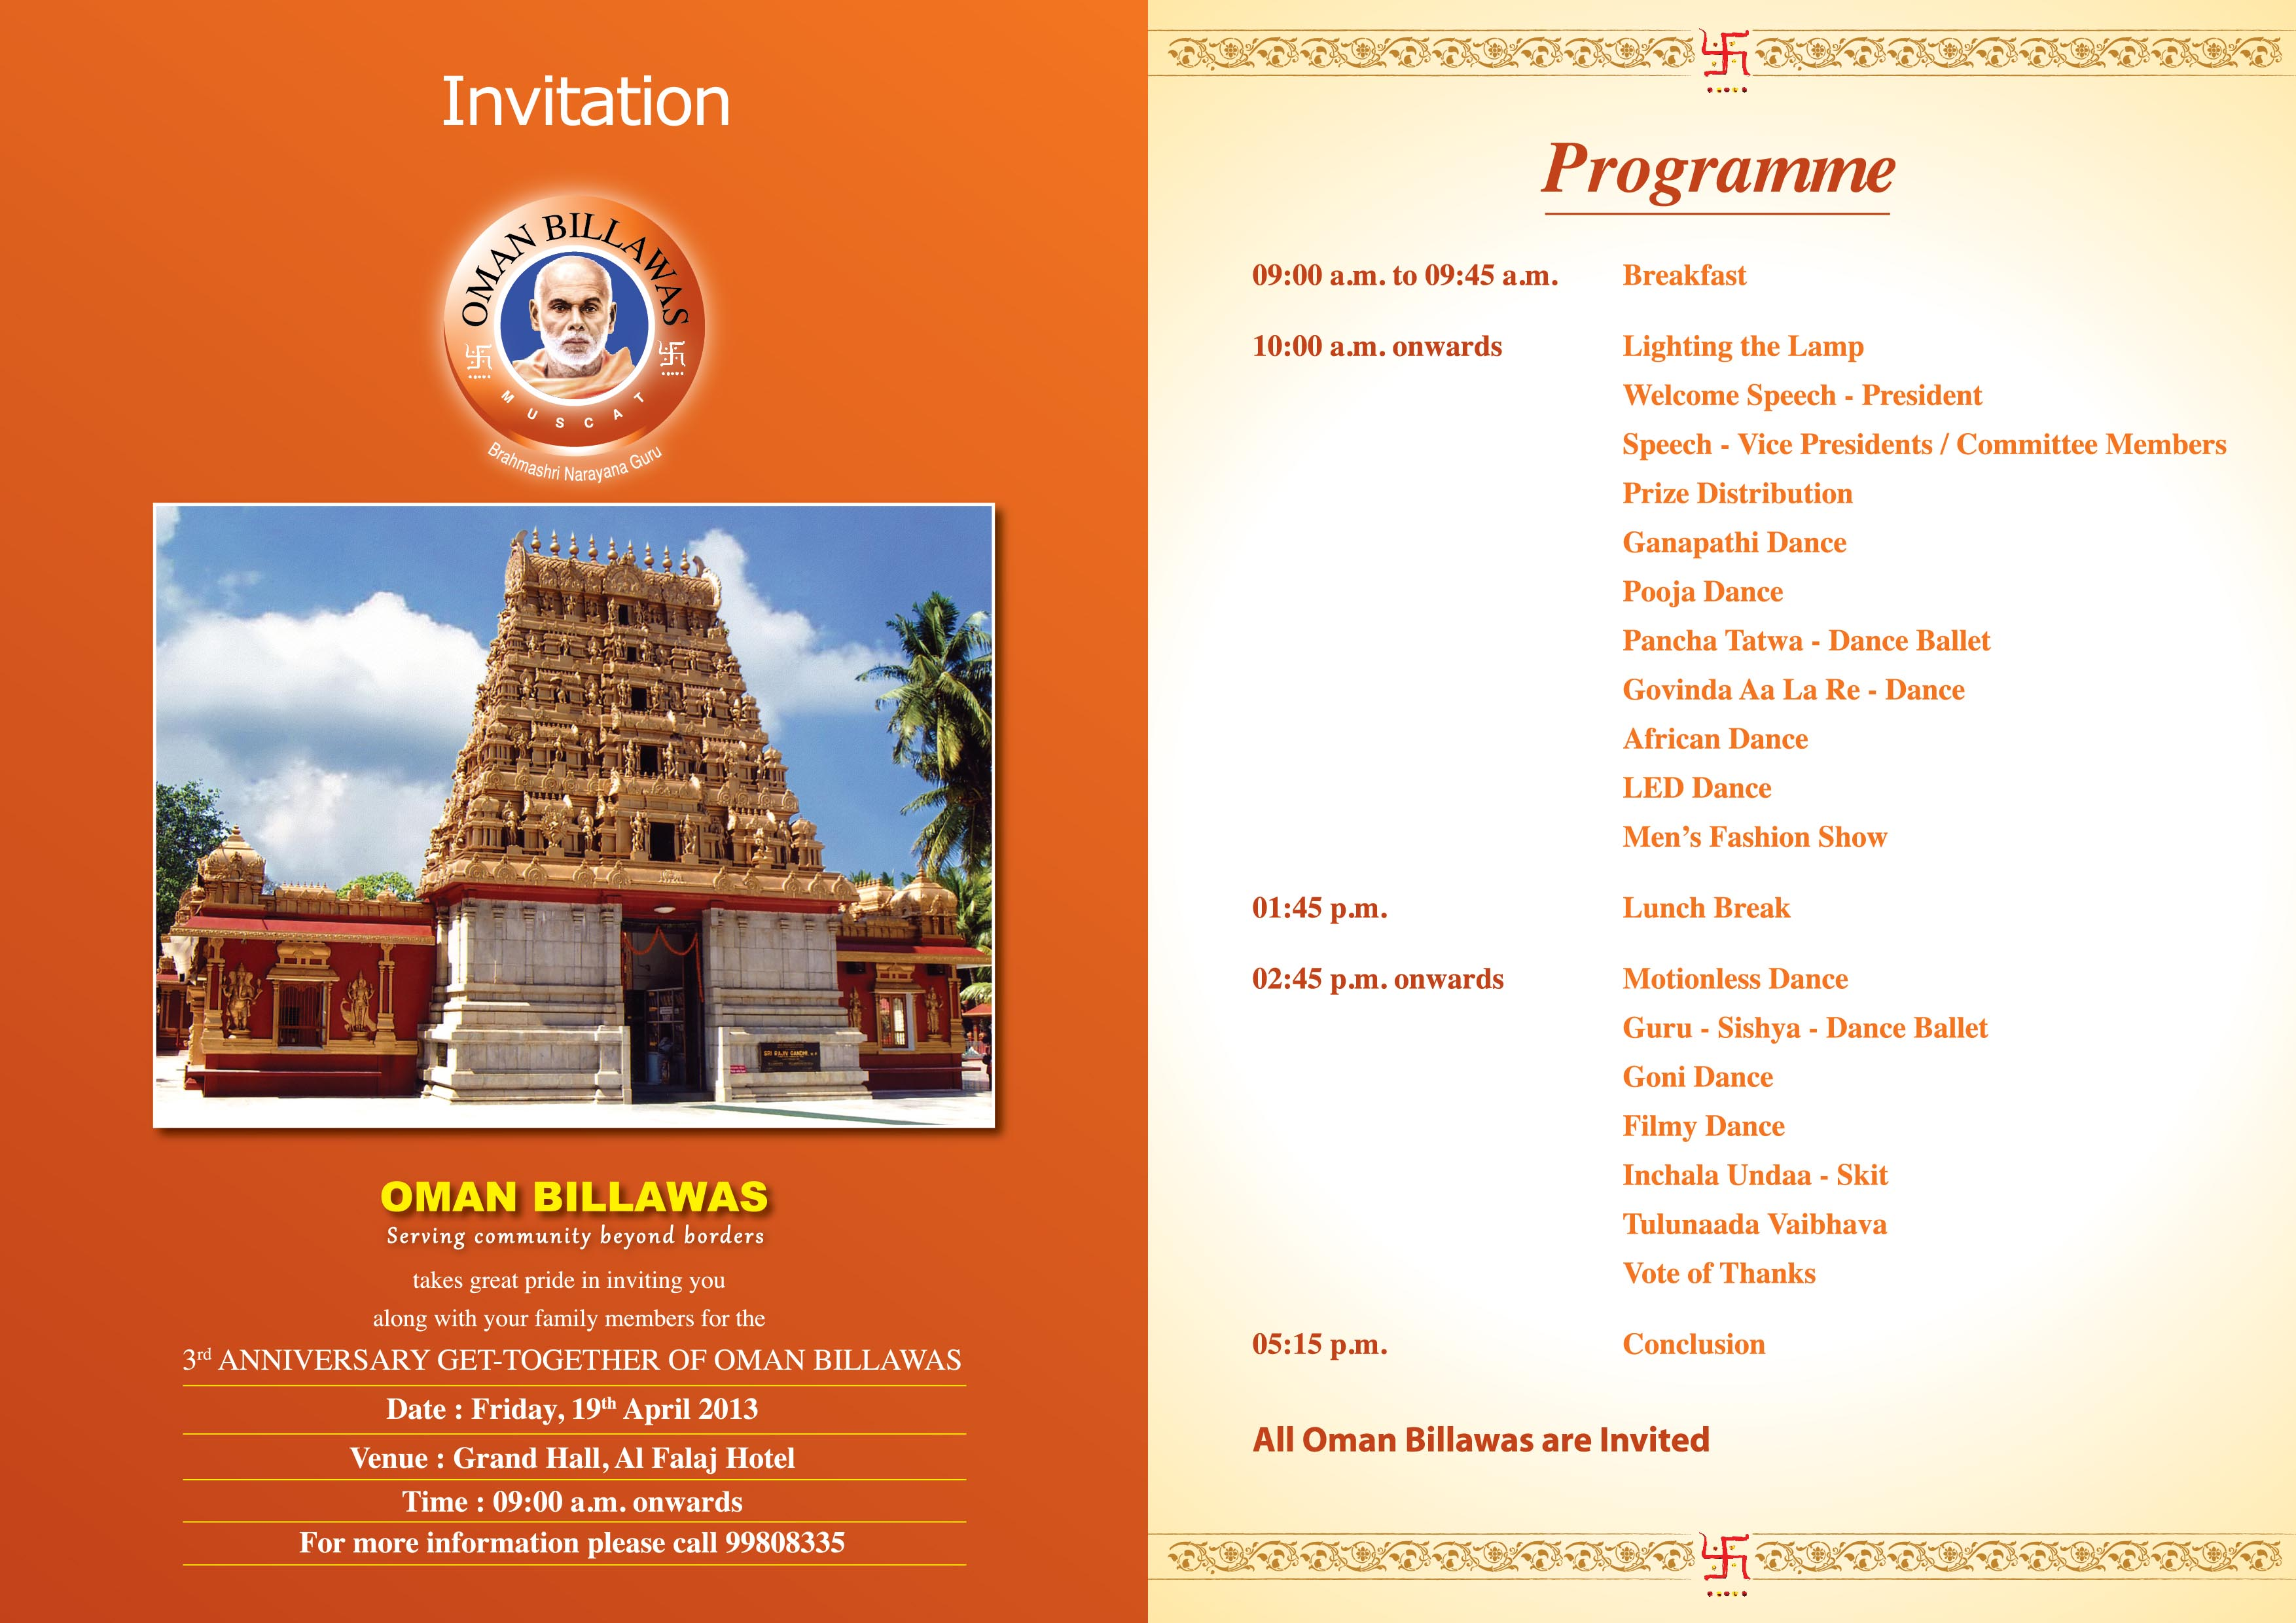 3rd anniversary Get Together of Oman Billawas – Invitation Card for Get Together